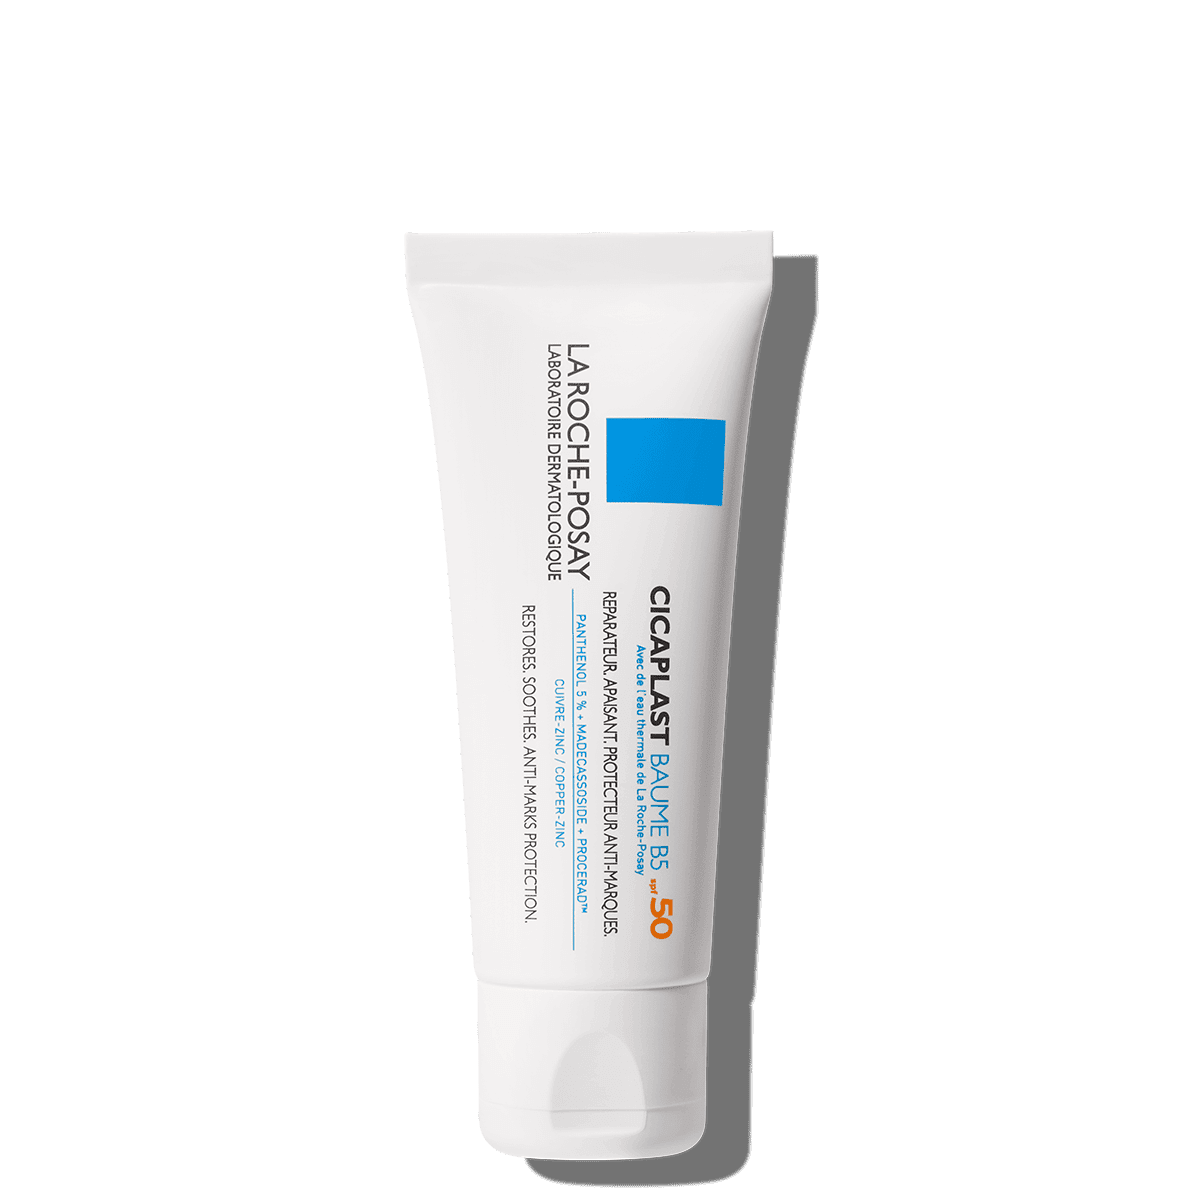 La Roche Posay ProductPage Damaged Cicaplast Baume B5 Spf50 40ml 3337875517300 Front